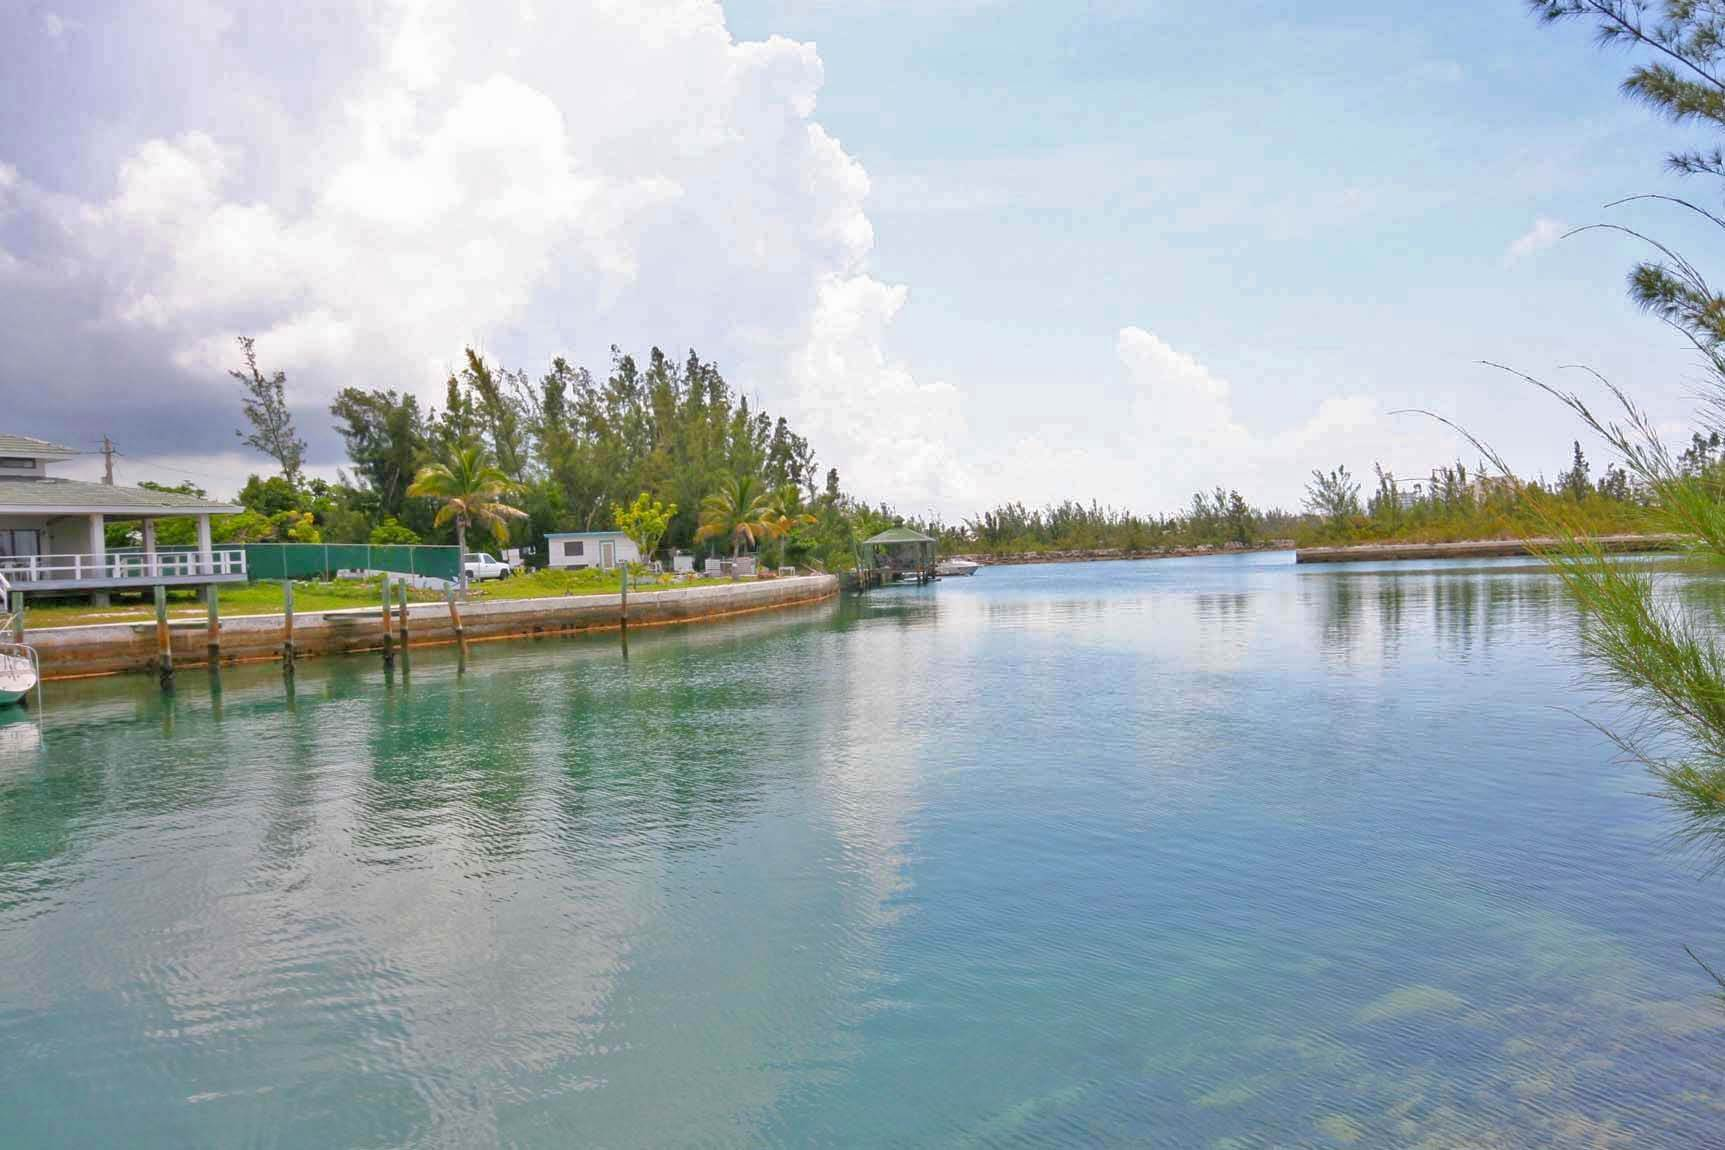 Terreno por un Venta en Tourist Commercial Canal Lot ideally located Across from Island Seas Resort and Beach!! Silver Cove, Gran Bahama Freeport, Bahamas